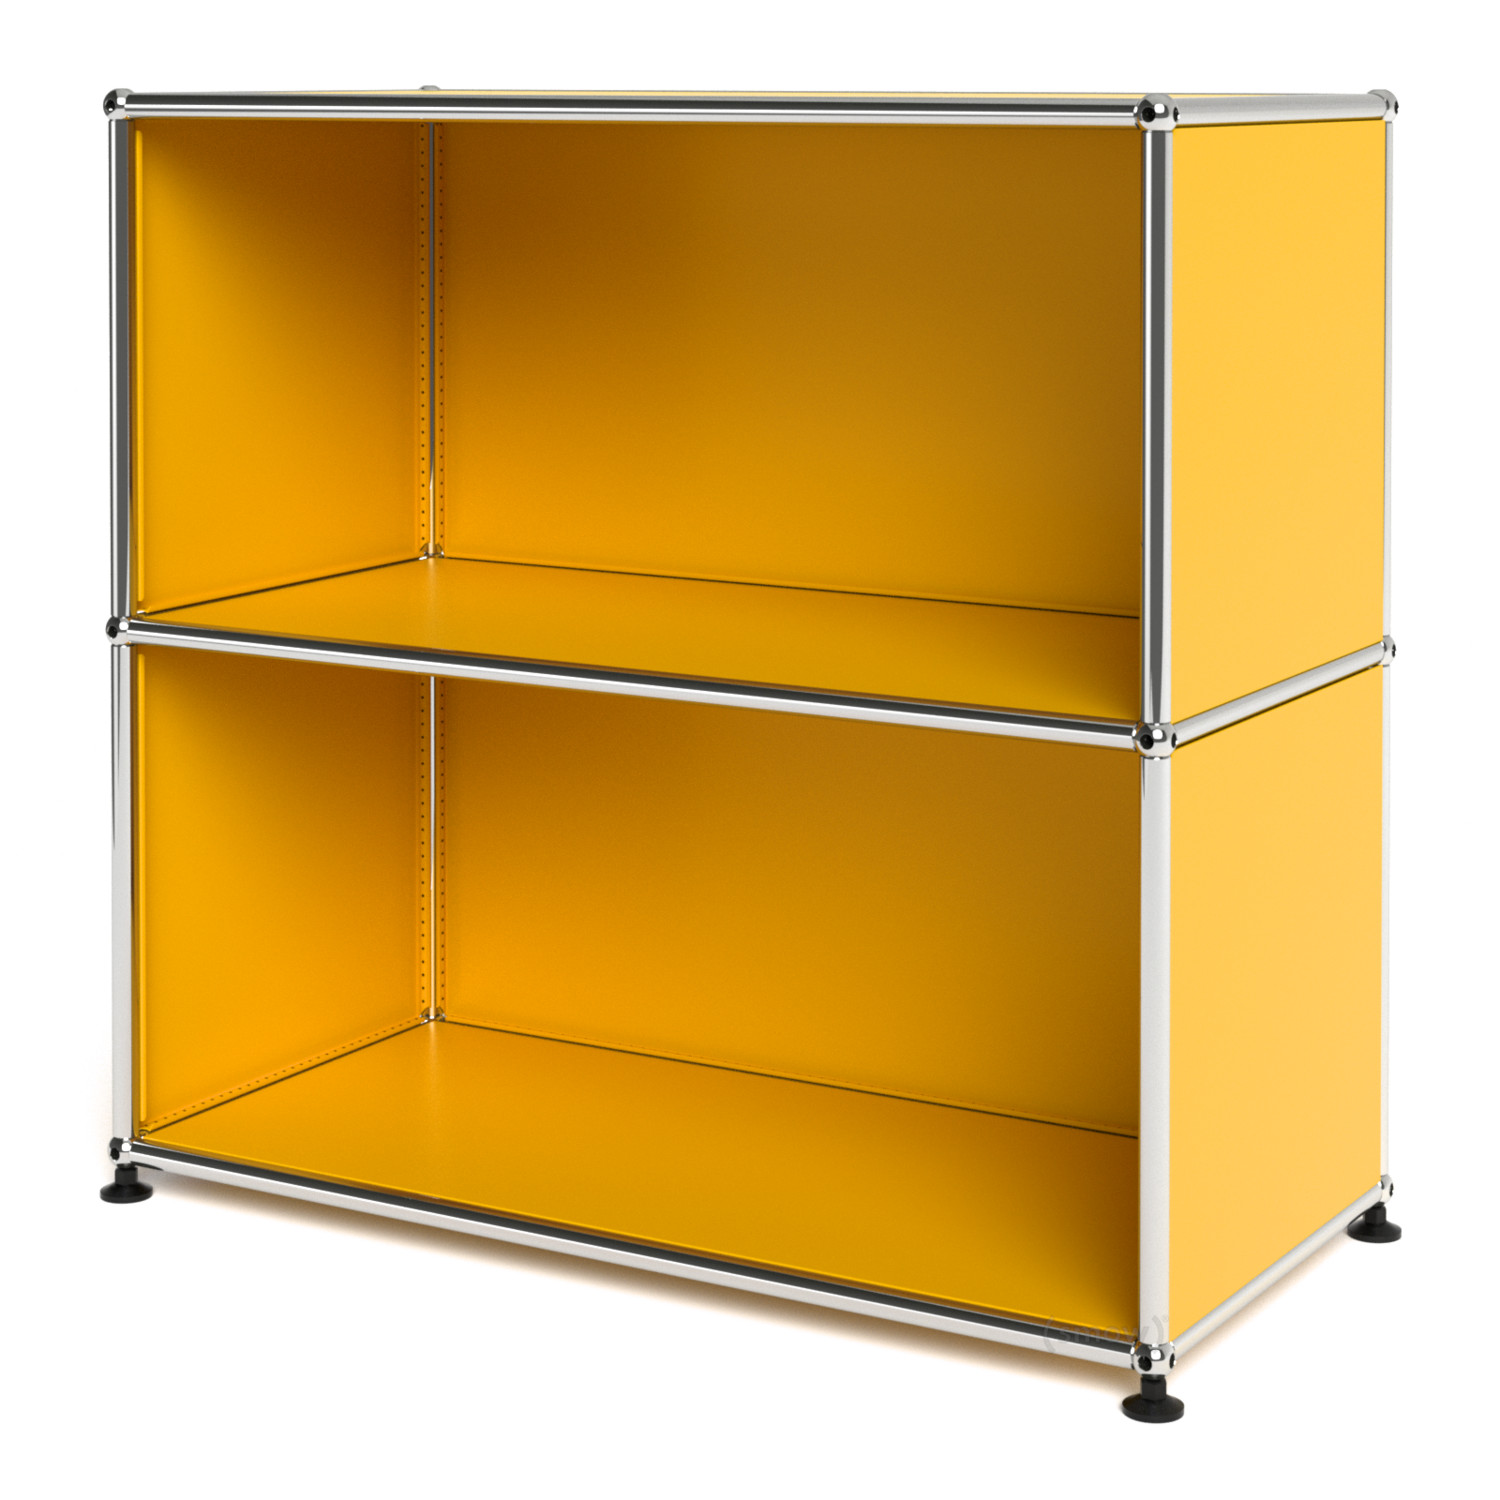 Usm haller sideboard m open golden yellow ral 1004 by for Sideboard usm